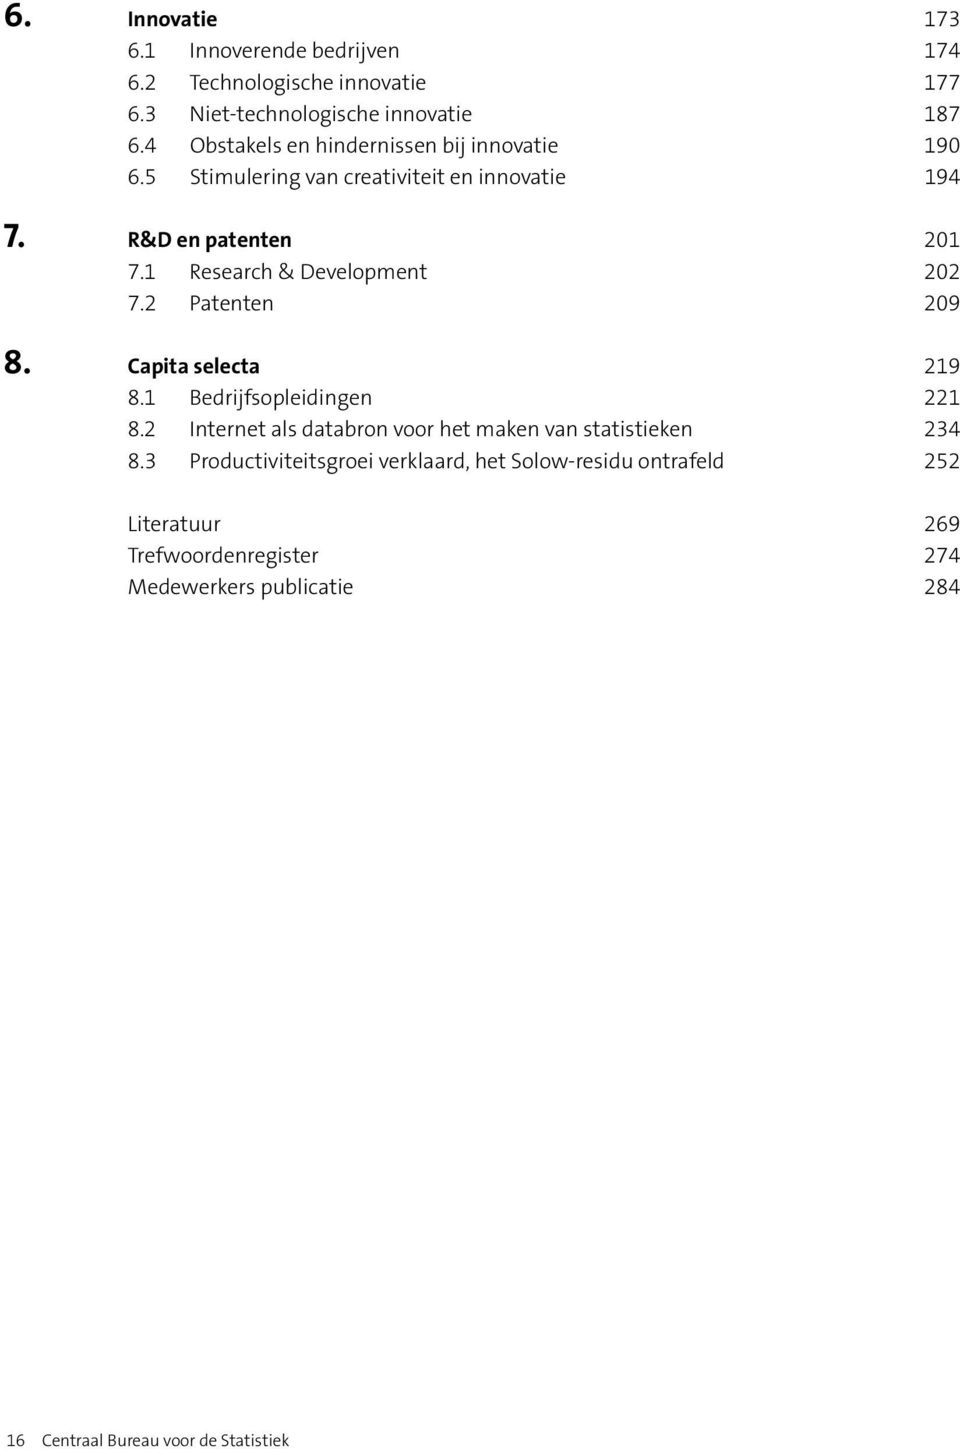 1 Research & Development 202 7.2 Patenten 209 8. Capita selecta 219 8.1 Bedrijfsopleidingen 221 8.